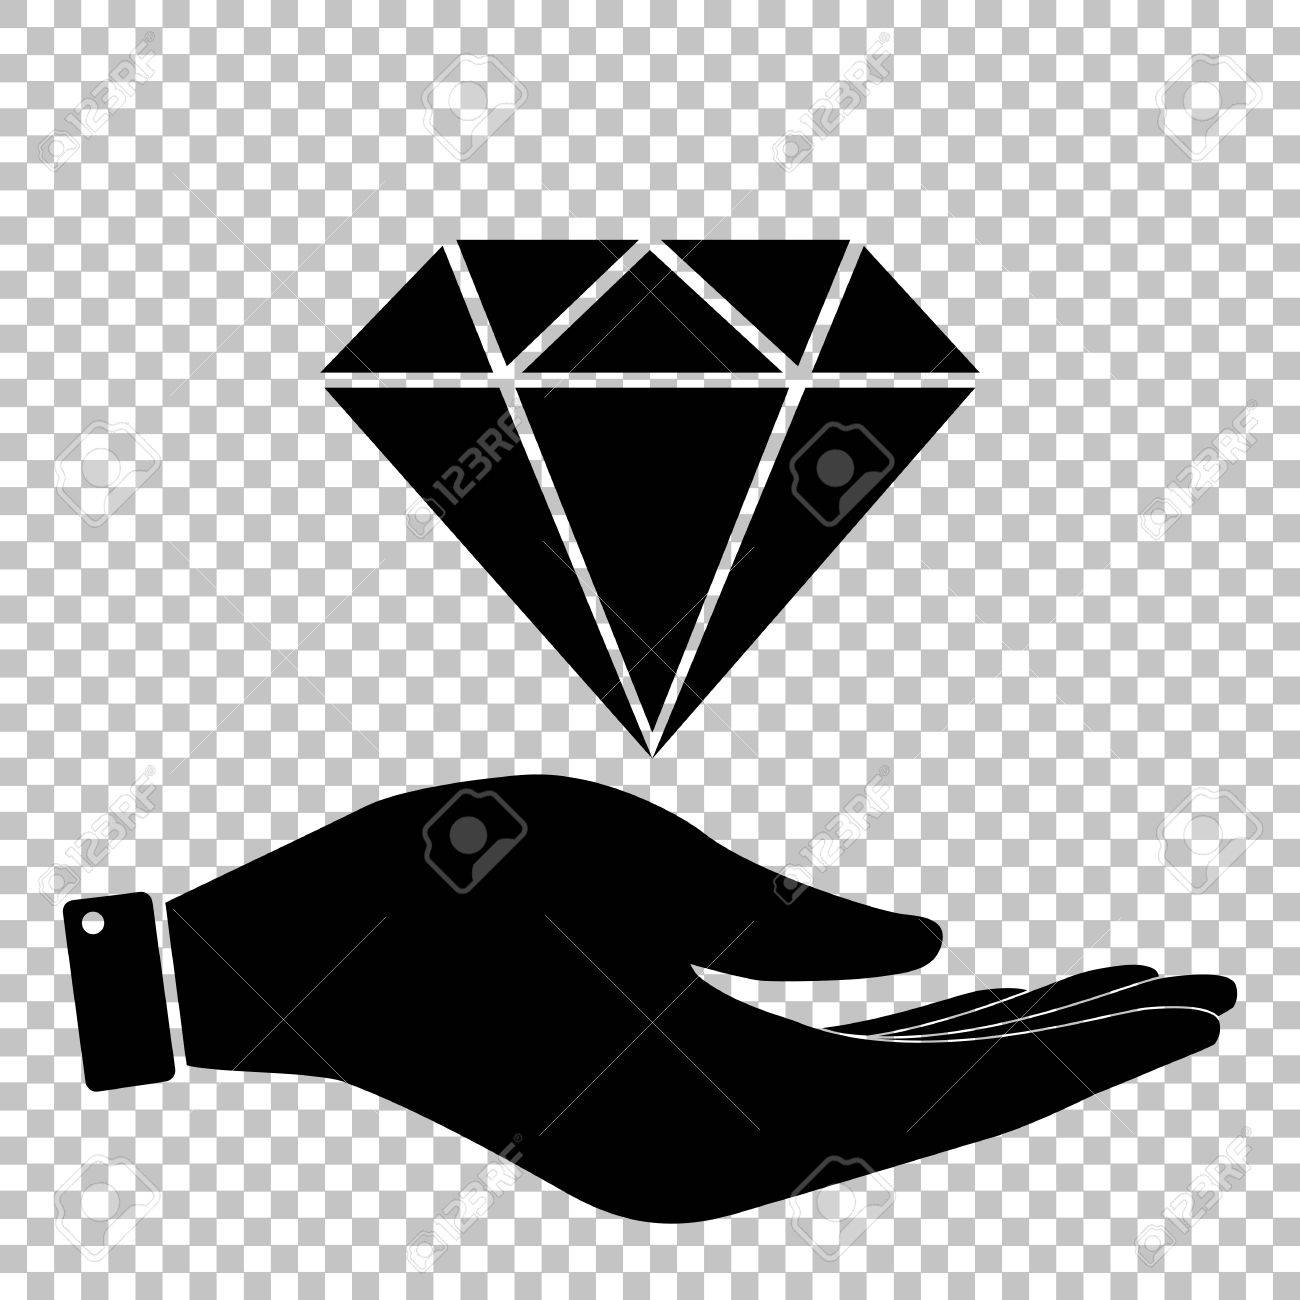 Diamond sign save or protect symbol by hand royalty free cliparts diamond sign save or protect symbol by hand stock vector 52778299 biocorpaavc